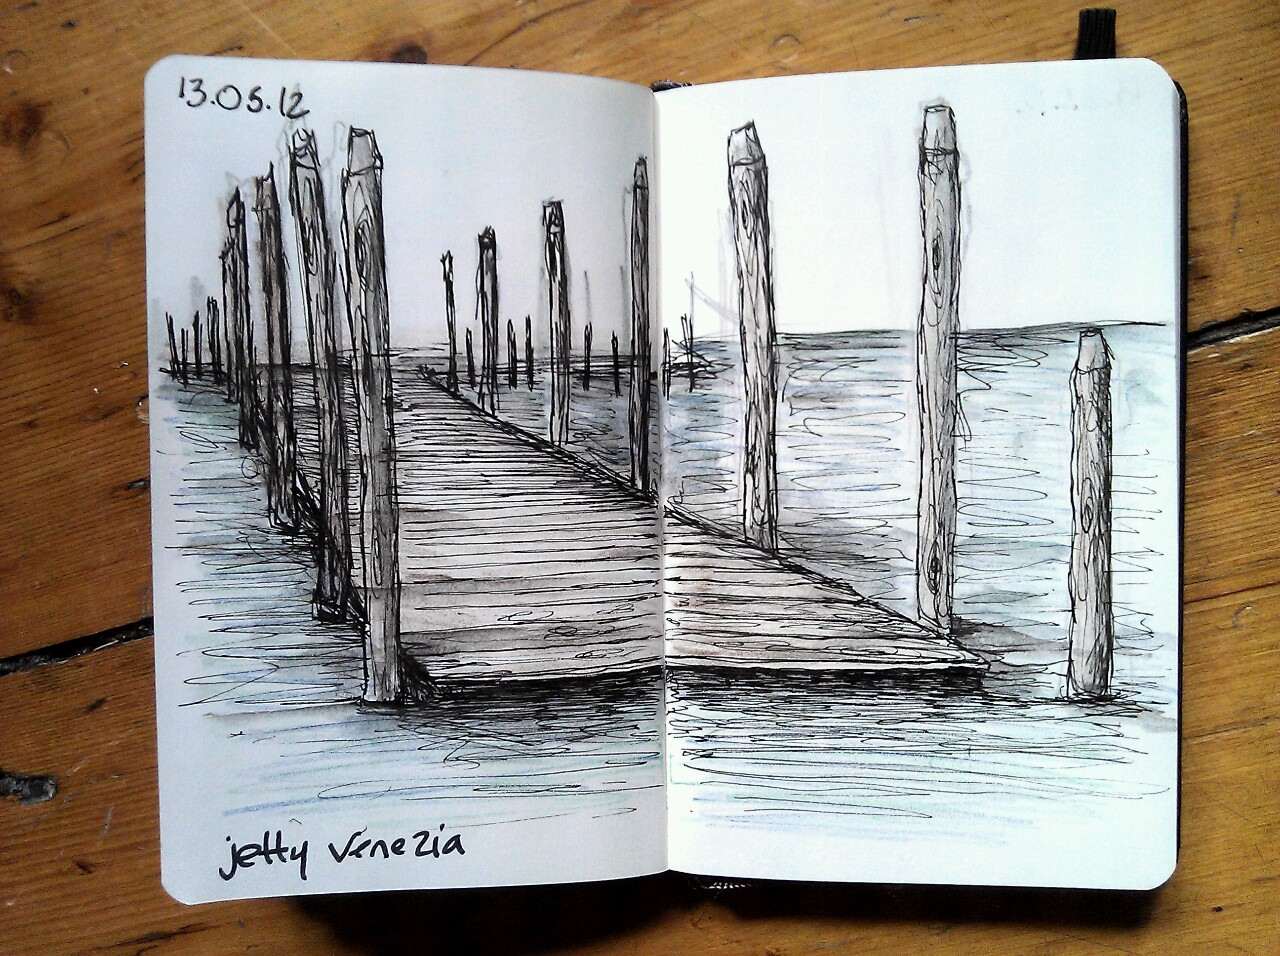 365 drawings later … day 103 … jetty venezia